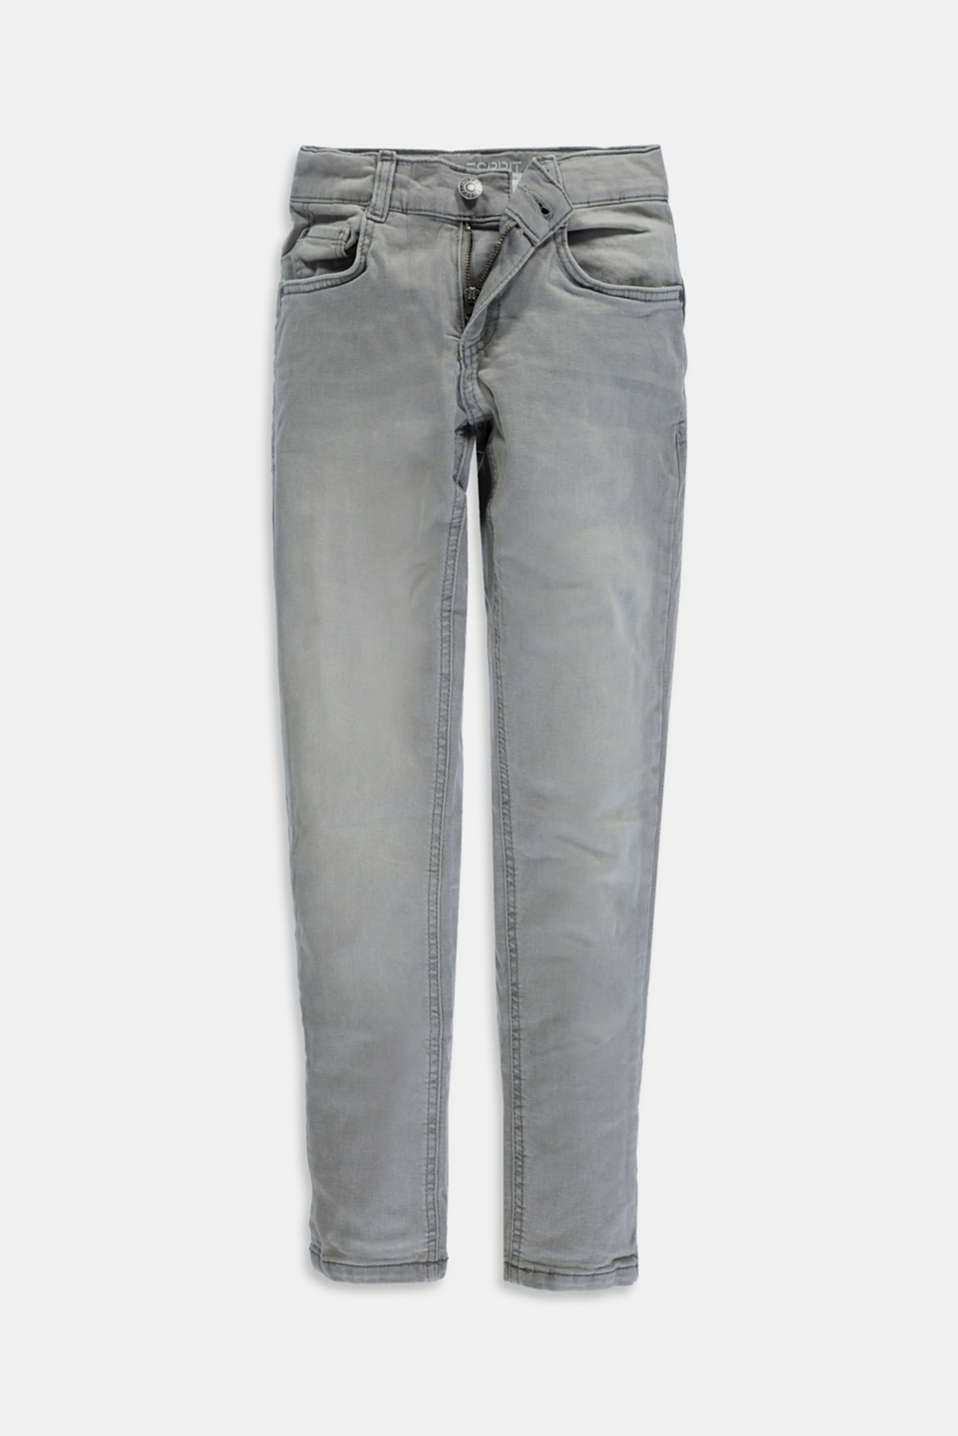 Esprit - Stretch jeans available in different widths with an adjustable waistband